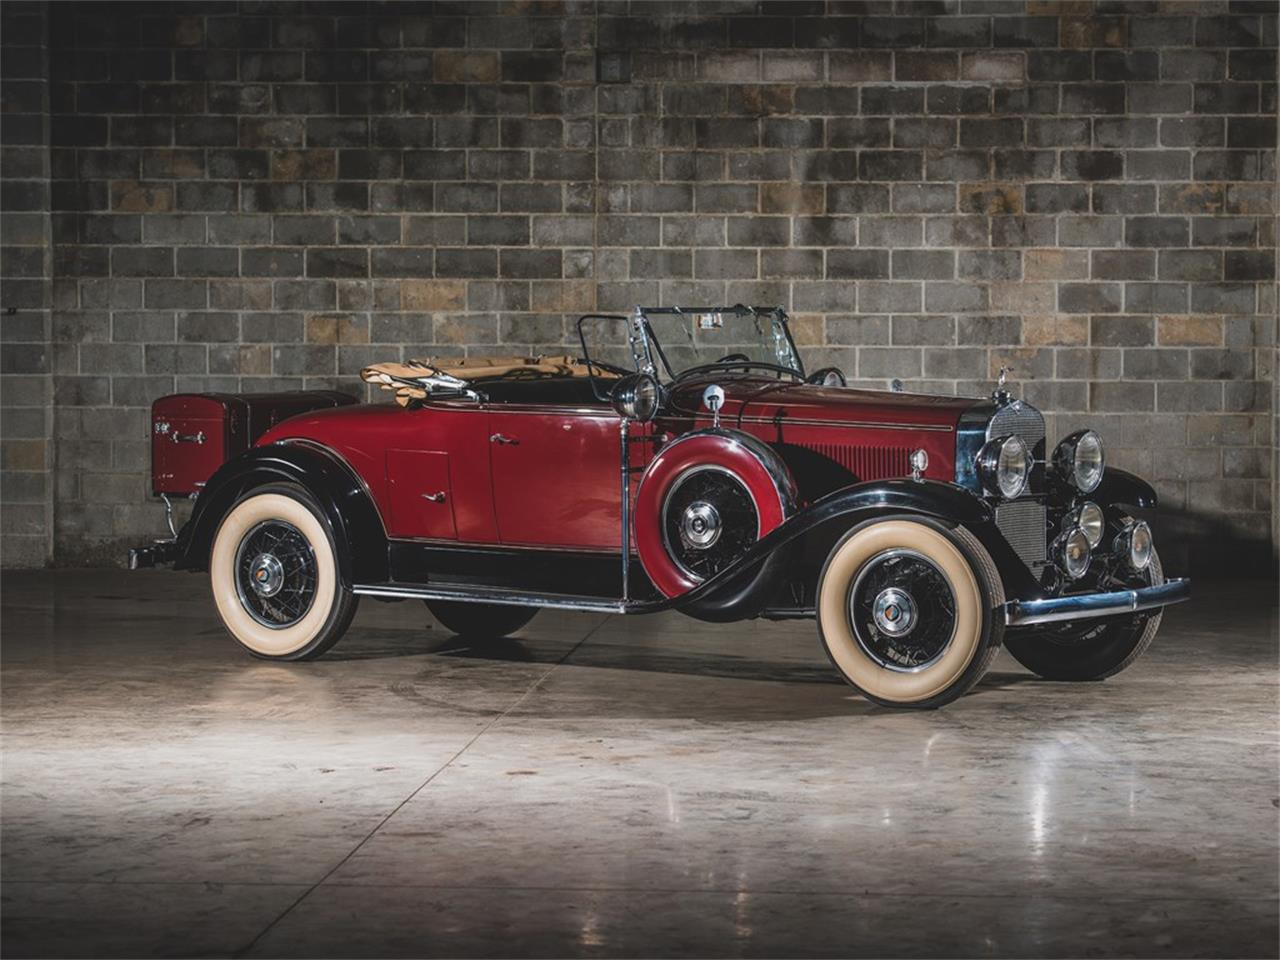 1931 LaSalle Roadster for sale in St Louis, MO